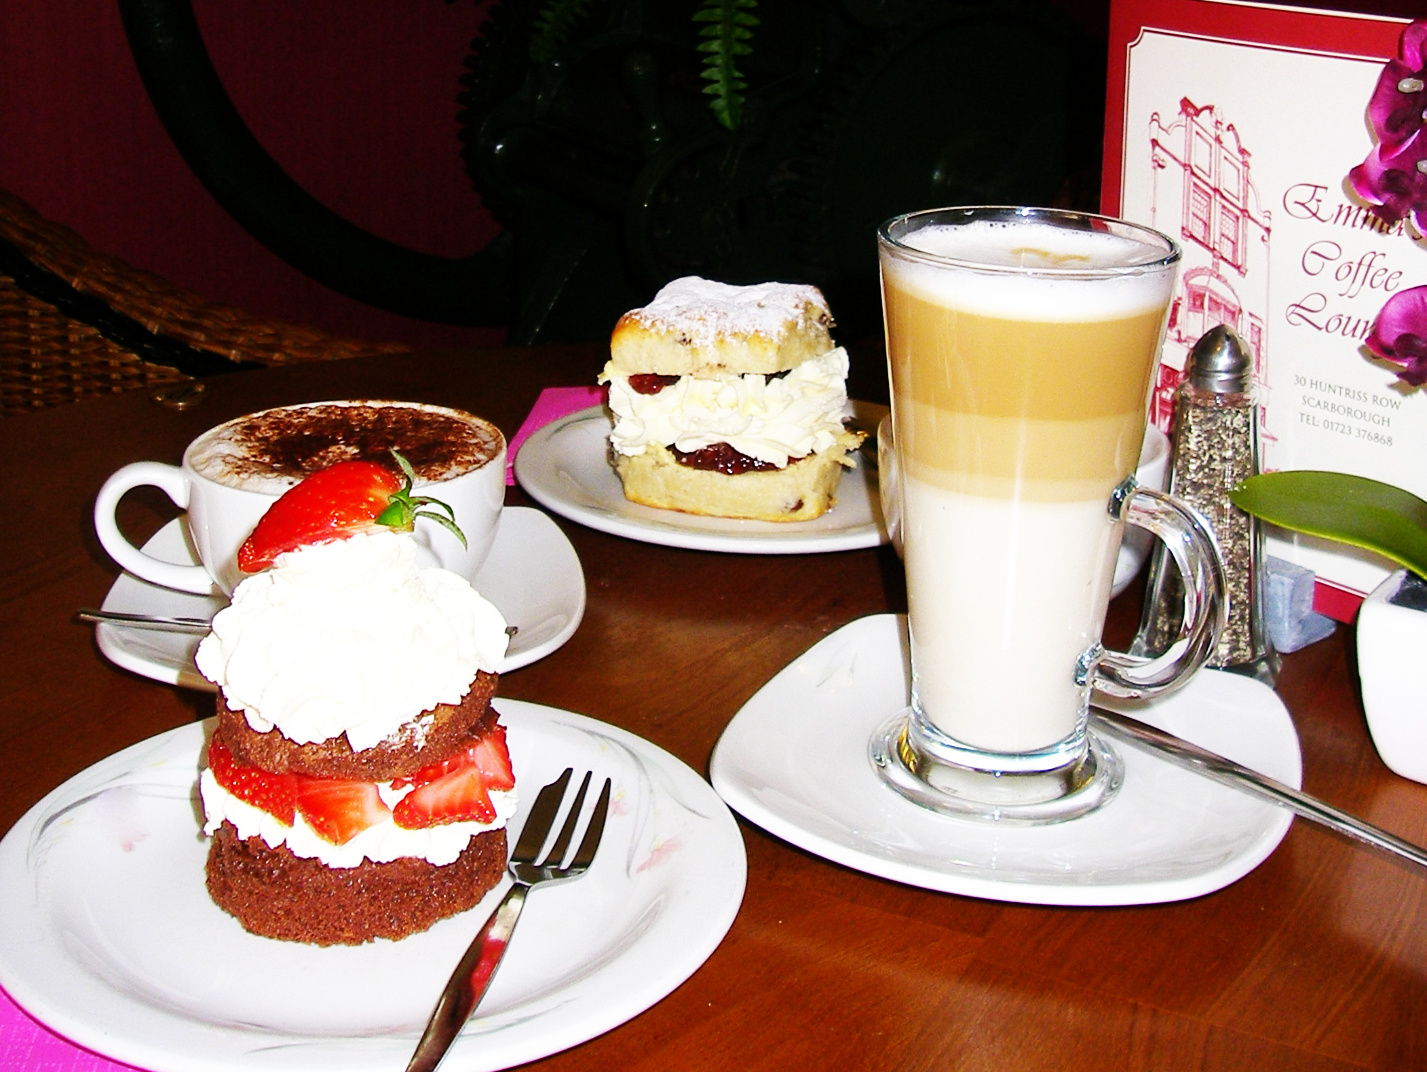 Coffee and cakes at Emma's Coffee Lounge, Scarborough